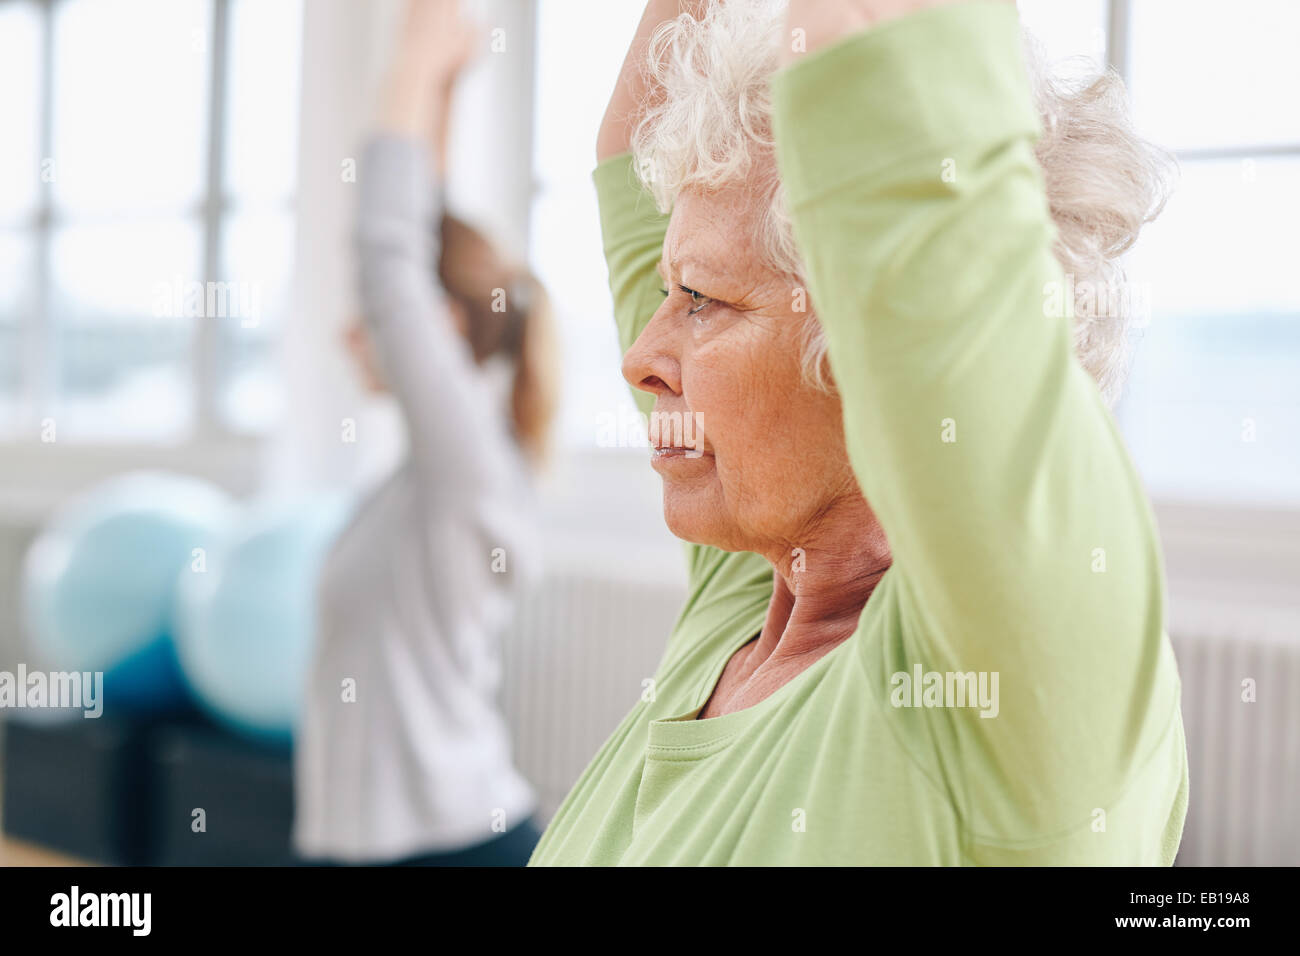 Close-up image of senior woman practicing yoga at gym. Active senior woman exercising at health club avec female Photo Stock